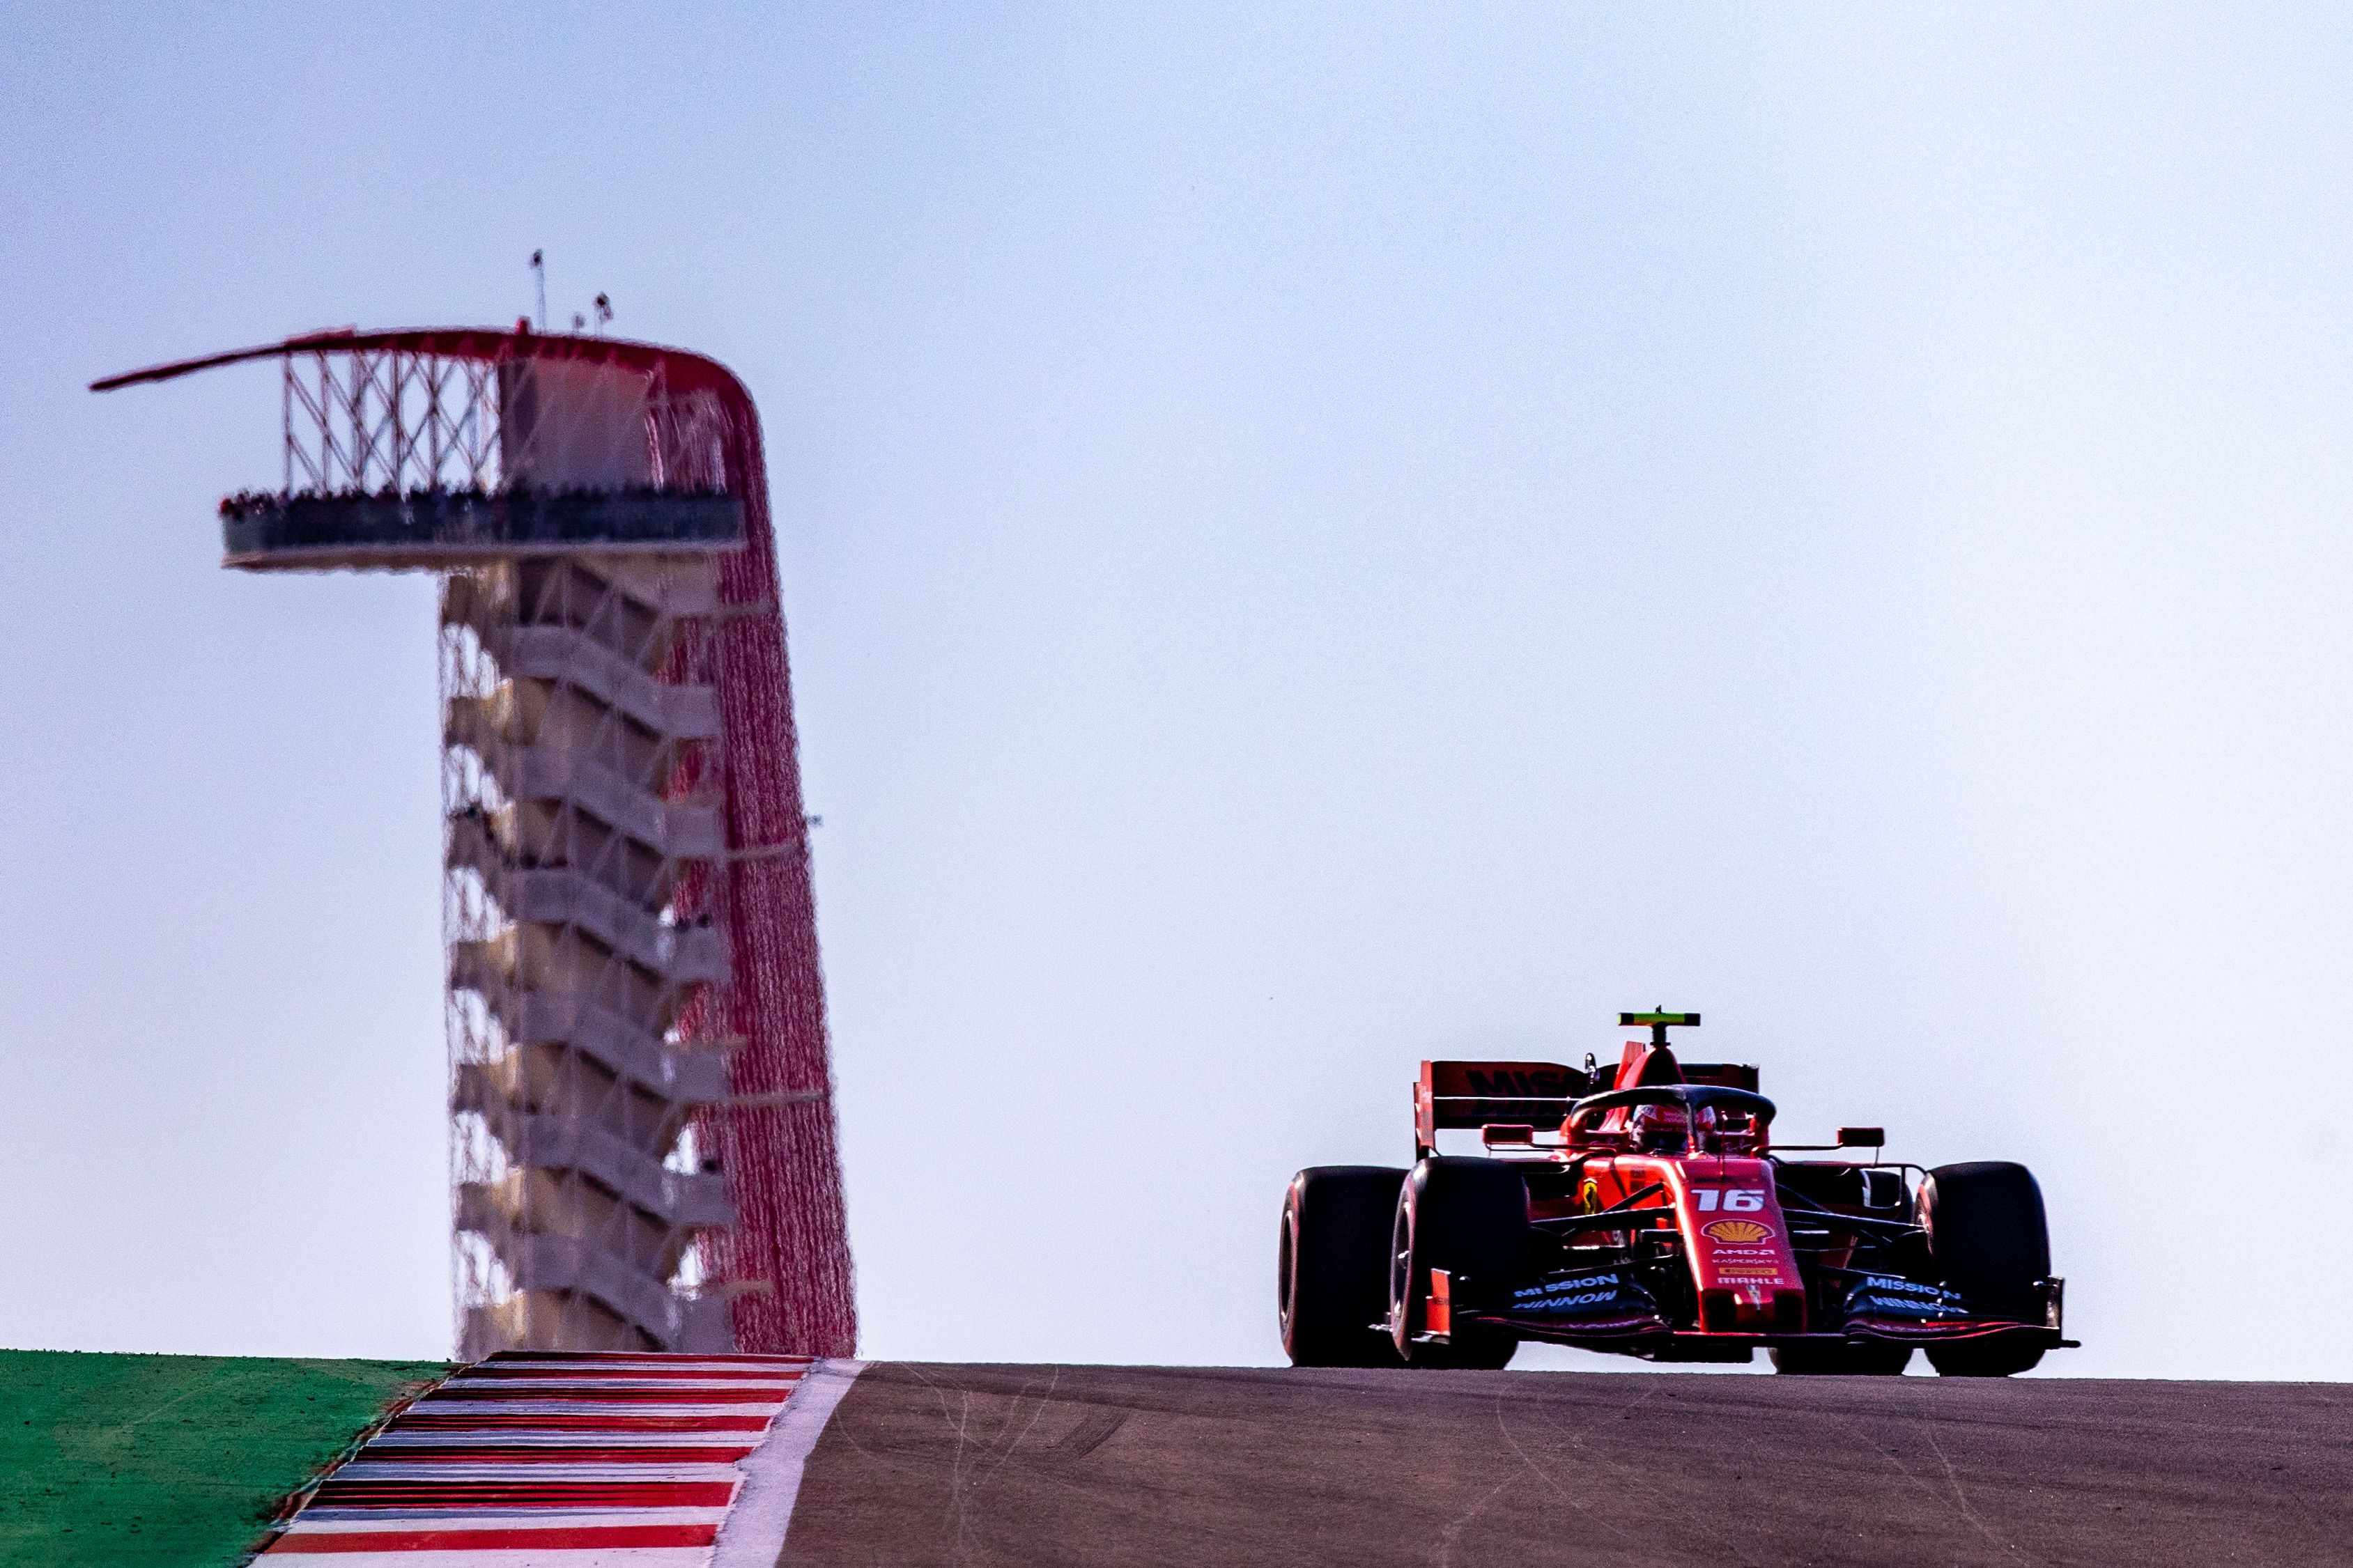 A red race car next to a tall structure in the back.